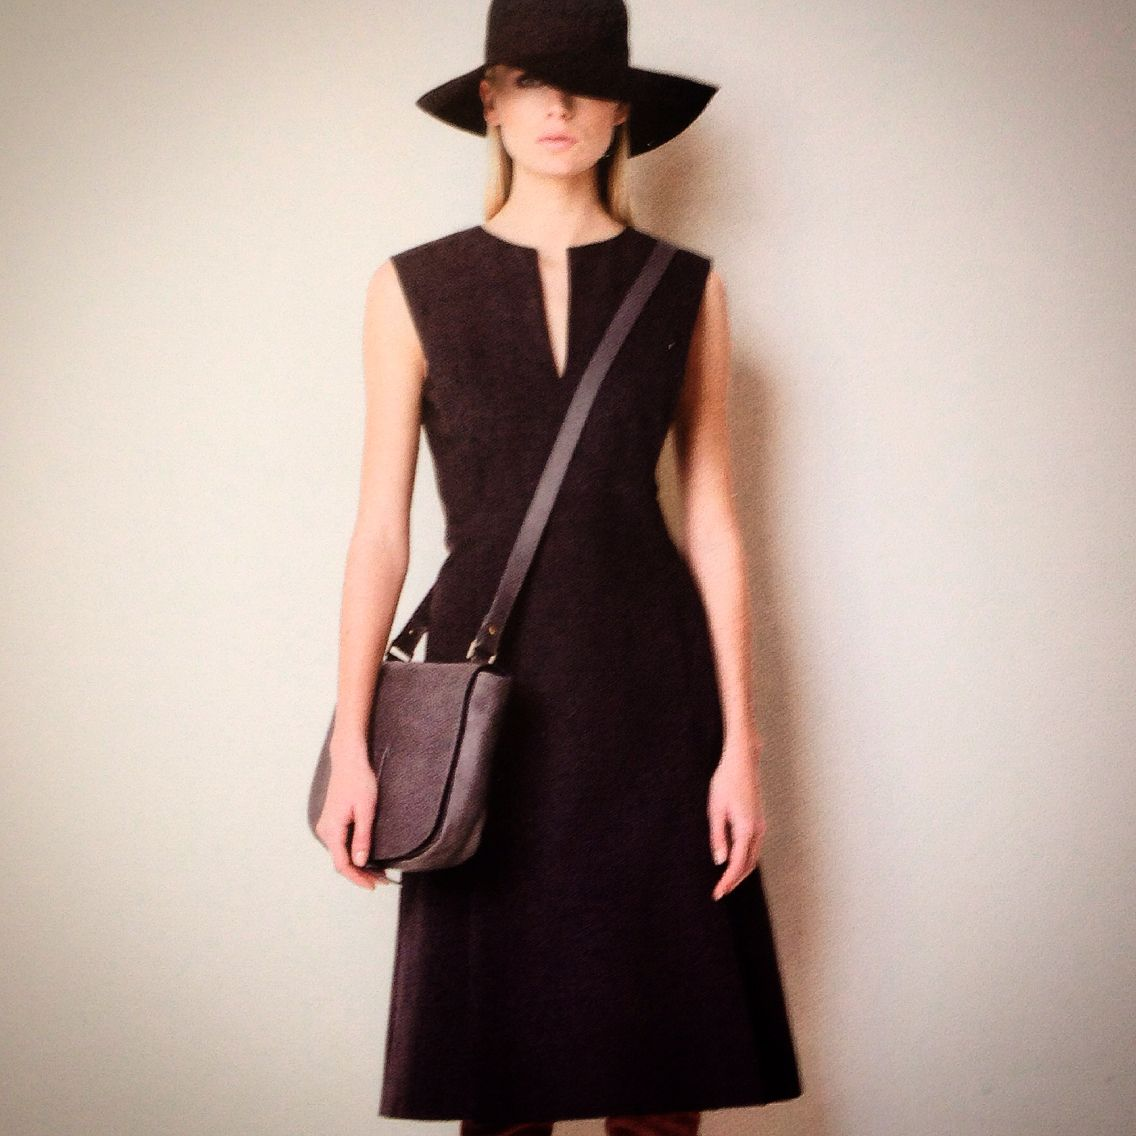 Black dress by SPACE. For night and day